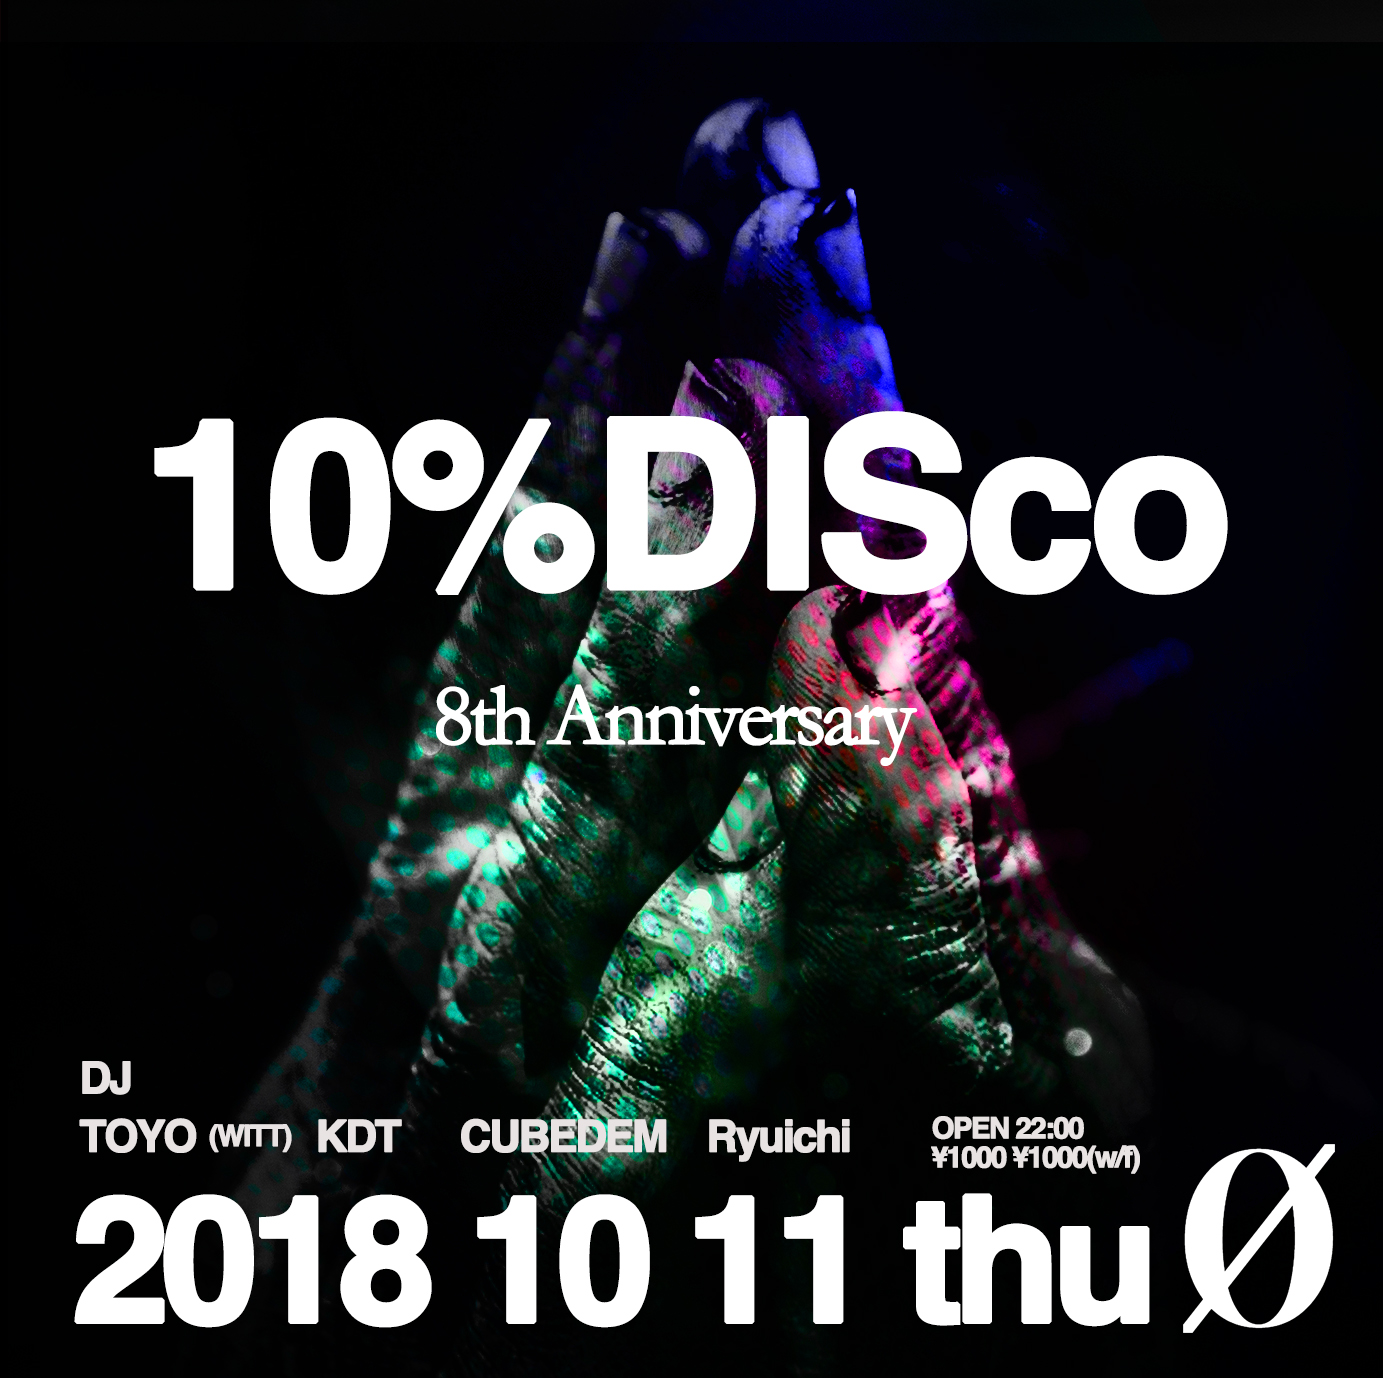 10% DISco ~8th Anniversary~